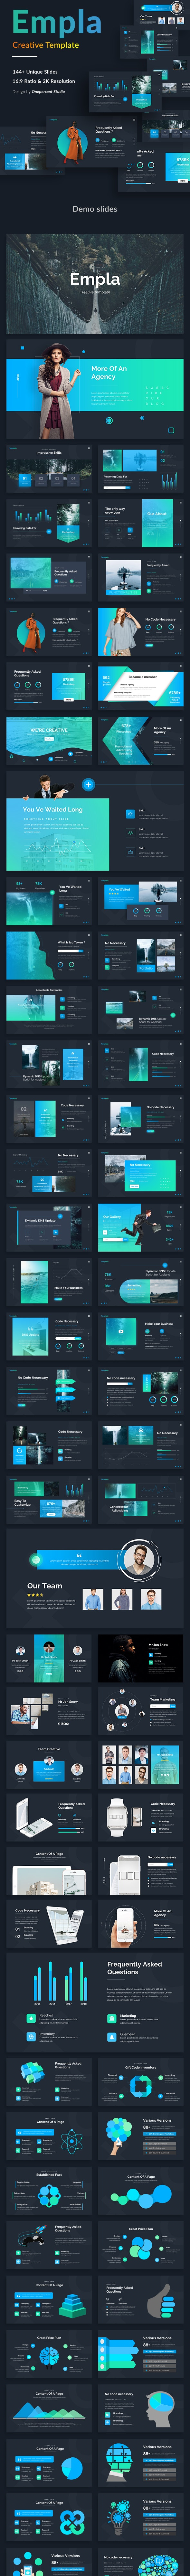 Empla Creative Keynote Template - Creative Keynote Templates